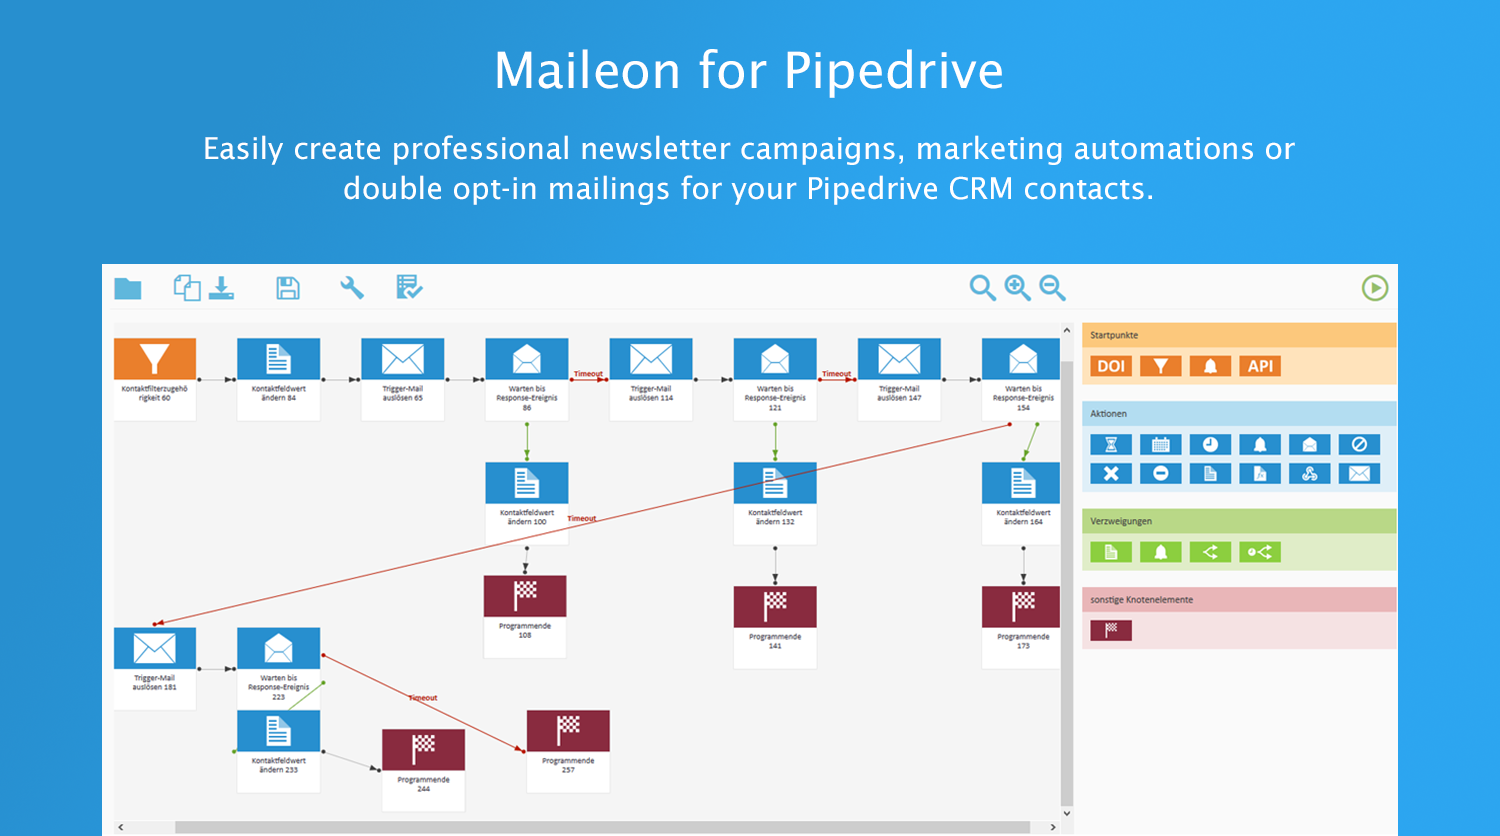 Maileon for Pipedrive